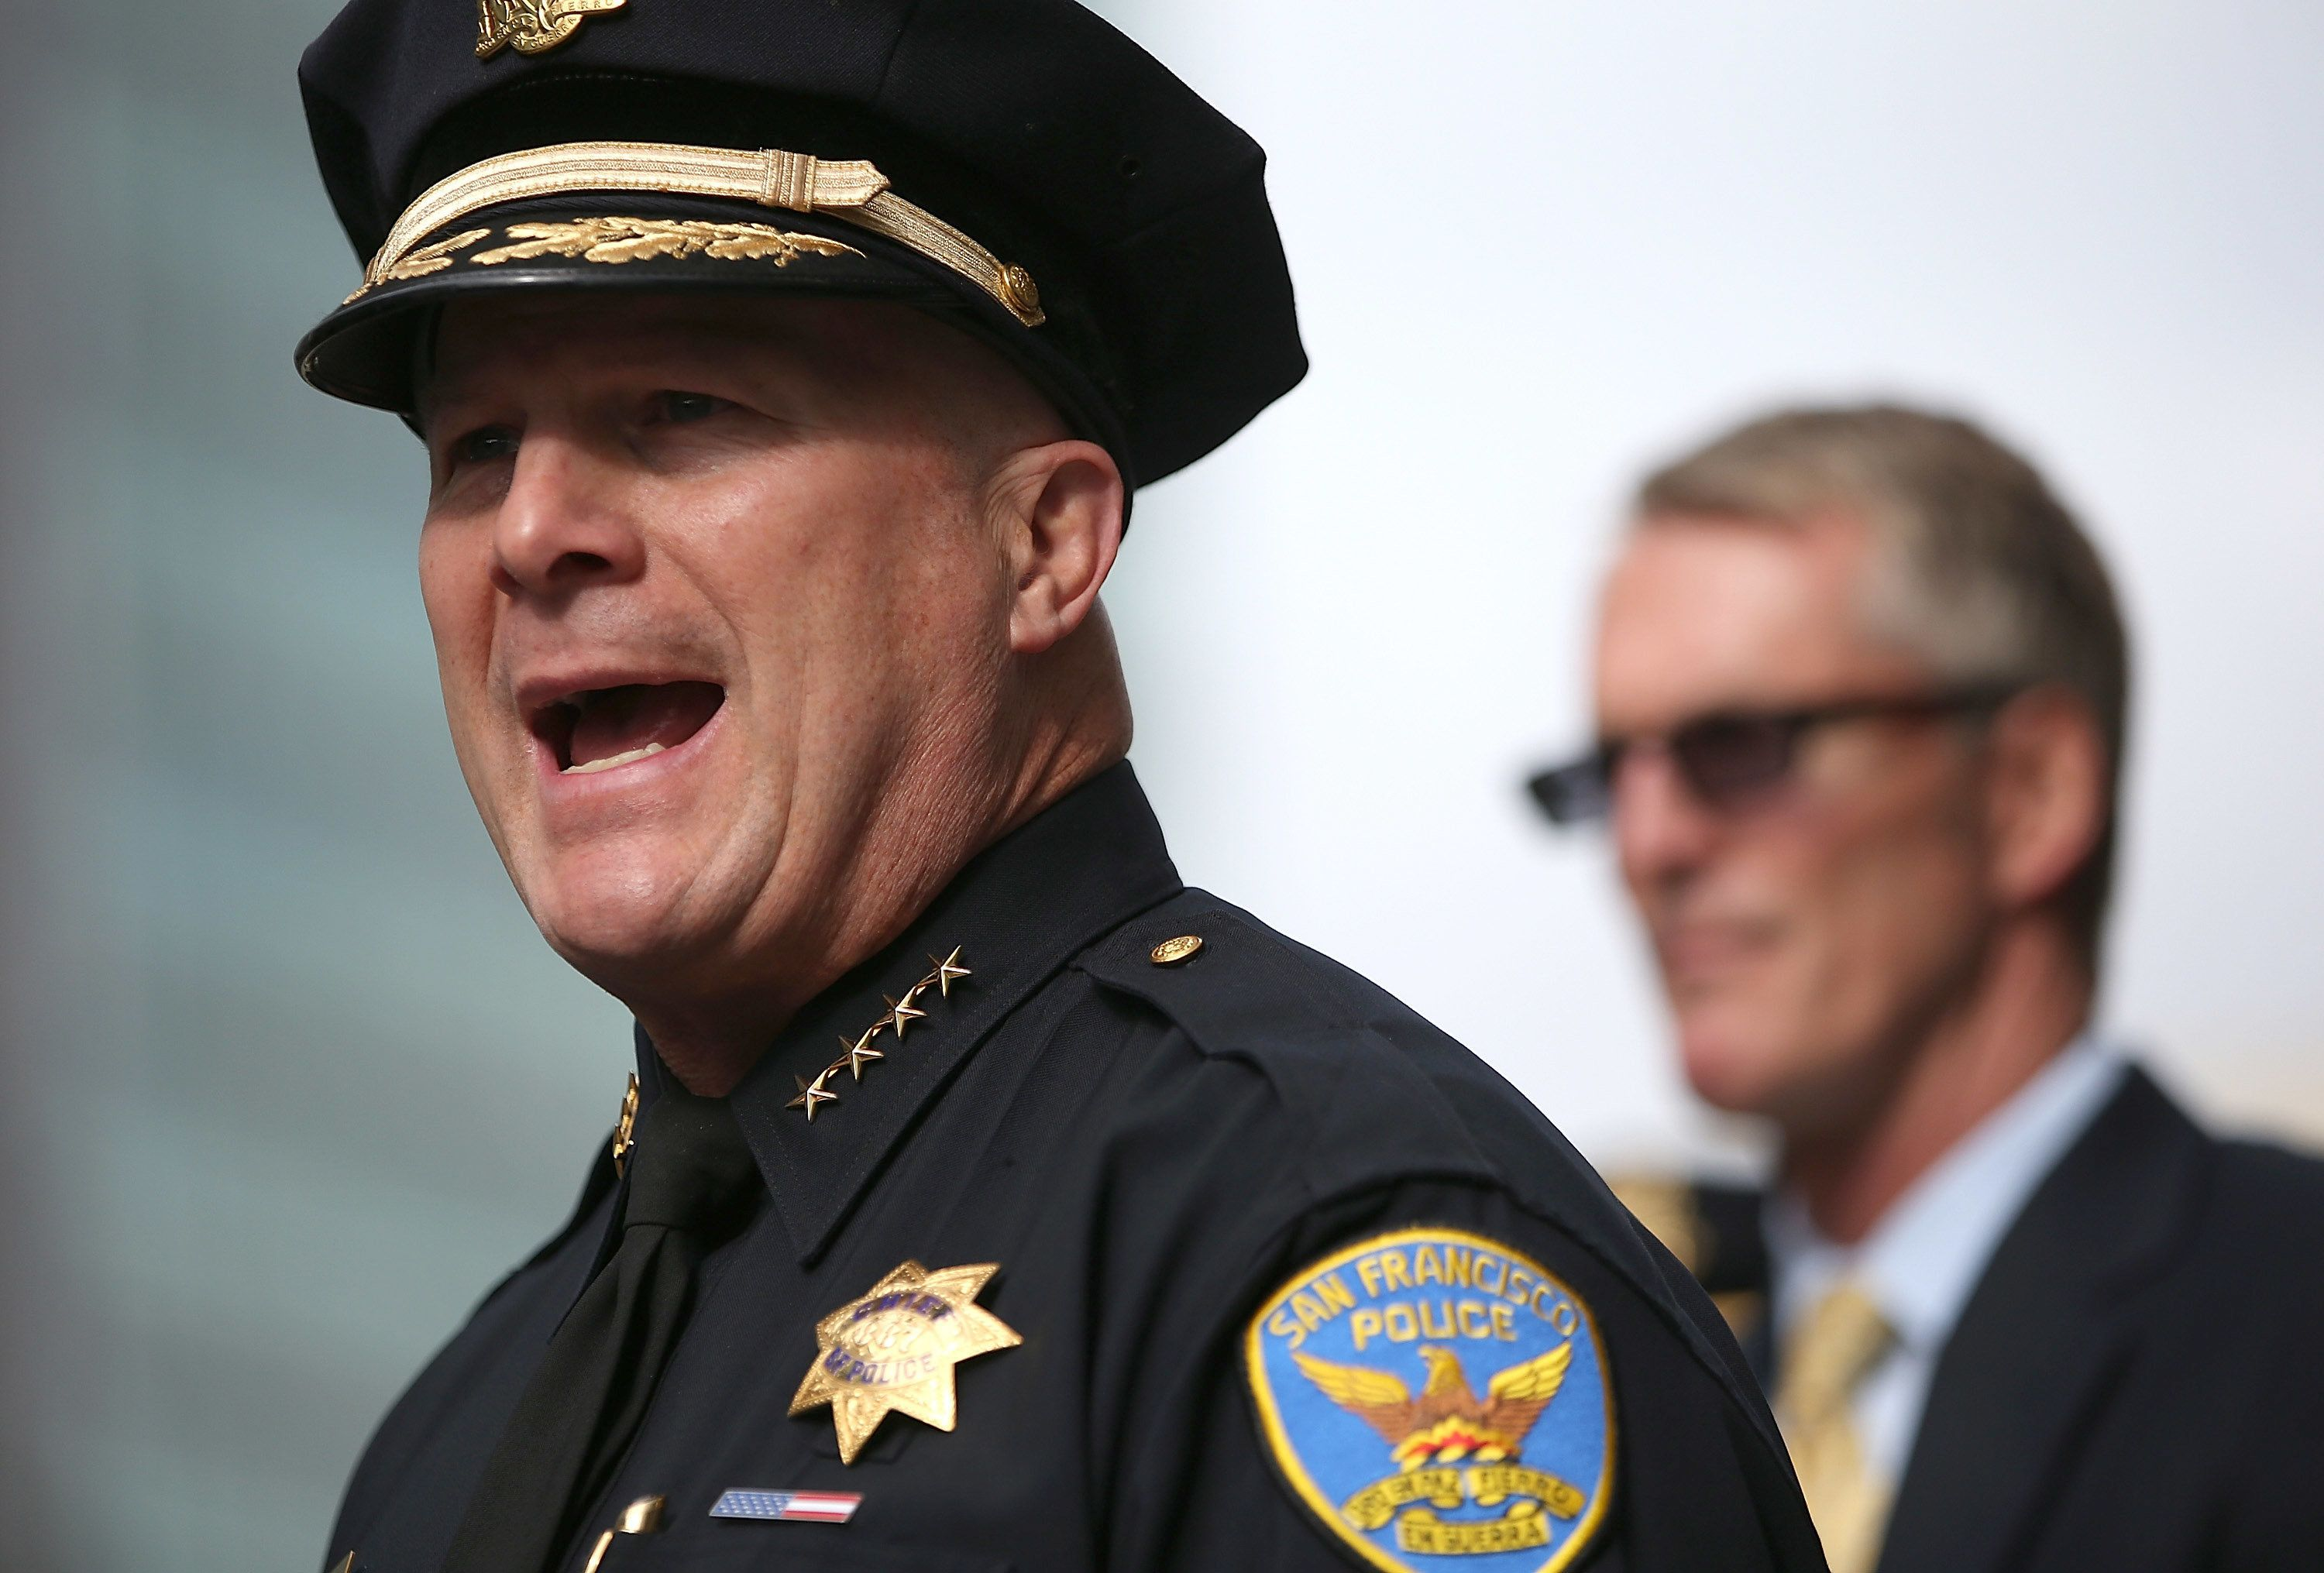 SAN FRANCISCO, CA - JUNE 03:  San Francisco police chief Greg Suhr (L) and FBI Special Agent in Charge David Johnson (R) hold a news conference to discuss the arrest of San Francisco political and media consultant Ryan Chamberlain on June 3, 2014 in San Francisco, California. San Francisco police officers arrested Chamberlain on Monday afternoon on suspicion of possessing explosives in violation of federal law after a three day nationwide manhunt.  (Photo by Justin Sullivan/Getty Images)